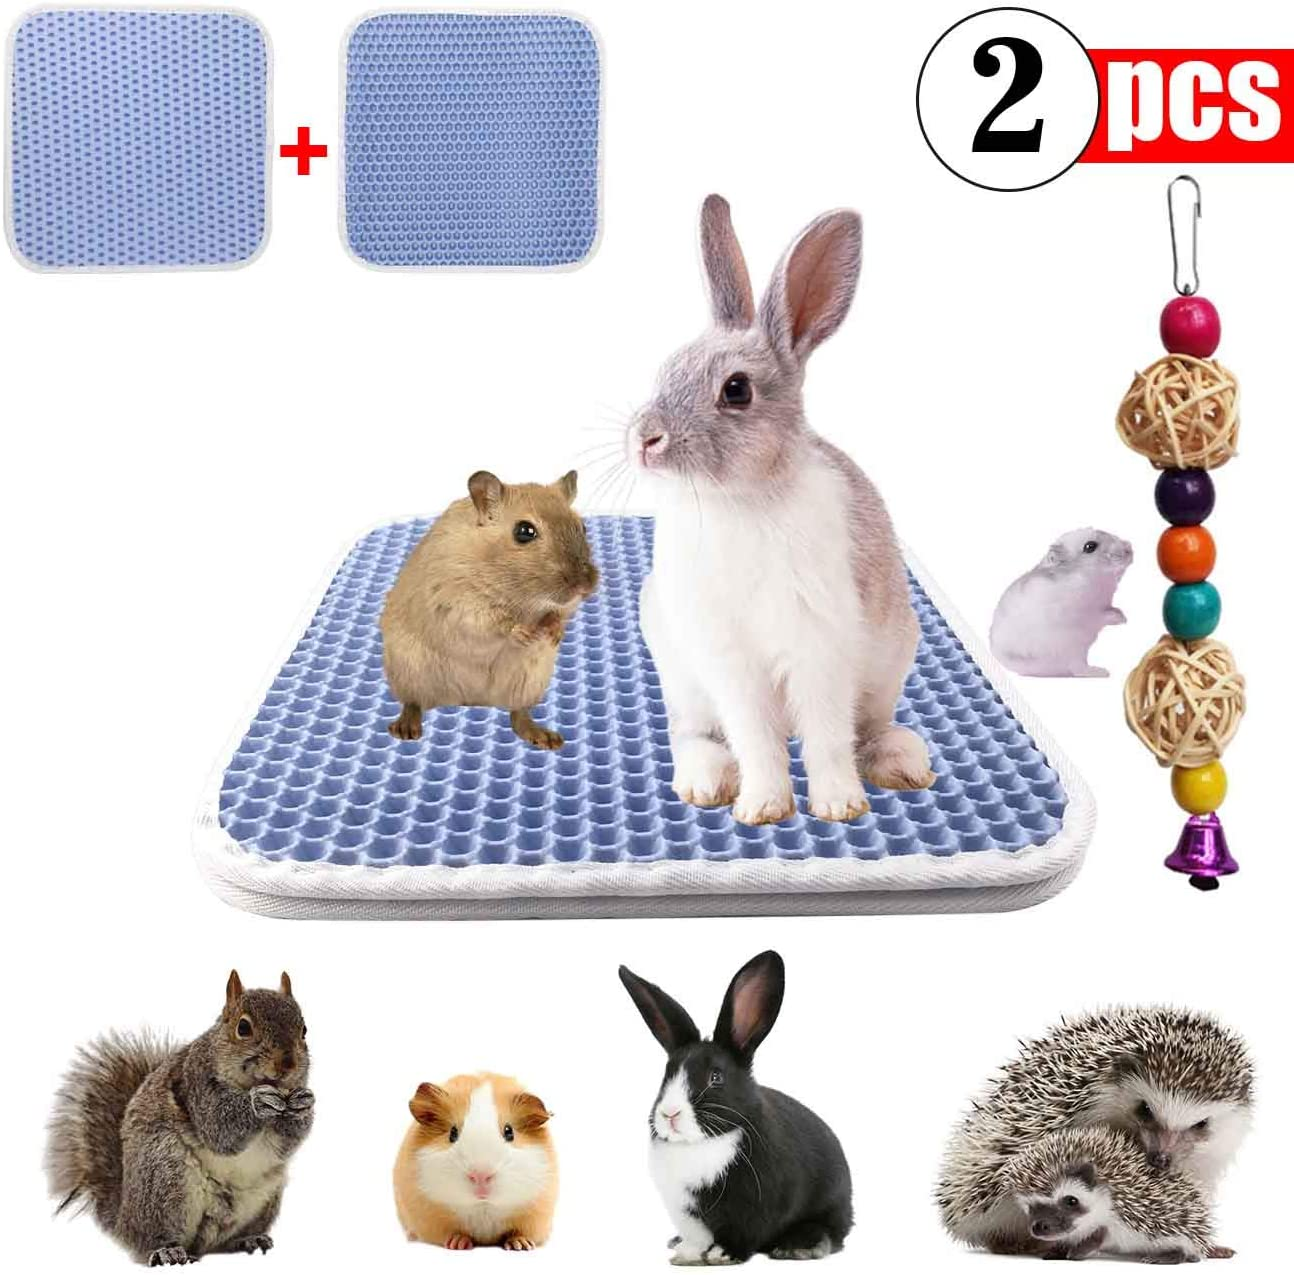 GABraden Rabbit cage mat,Urine Waterproof Extra,Small Animal Bunny Bedding,Bed,Mat for Guinea Pig Parrot Rabbit Bunny Hamster Rat